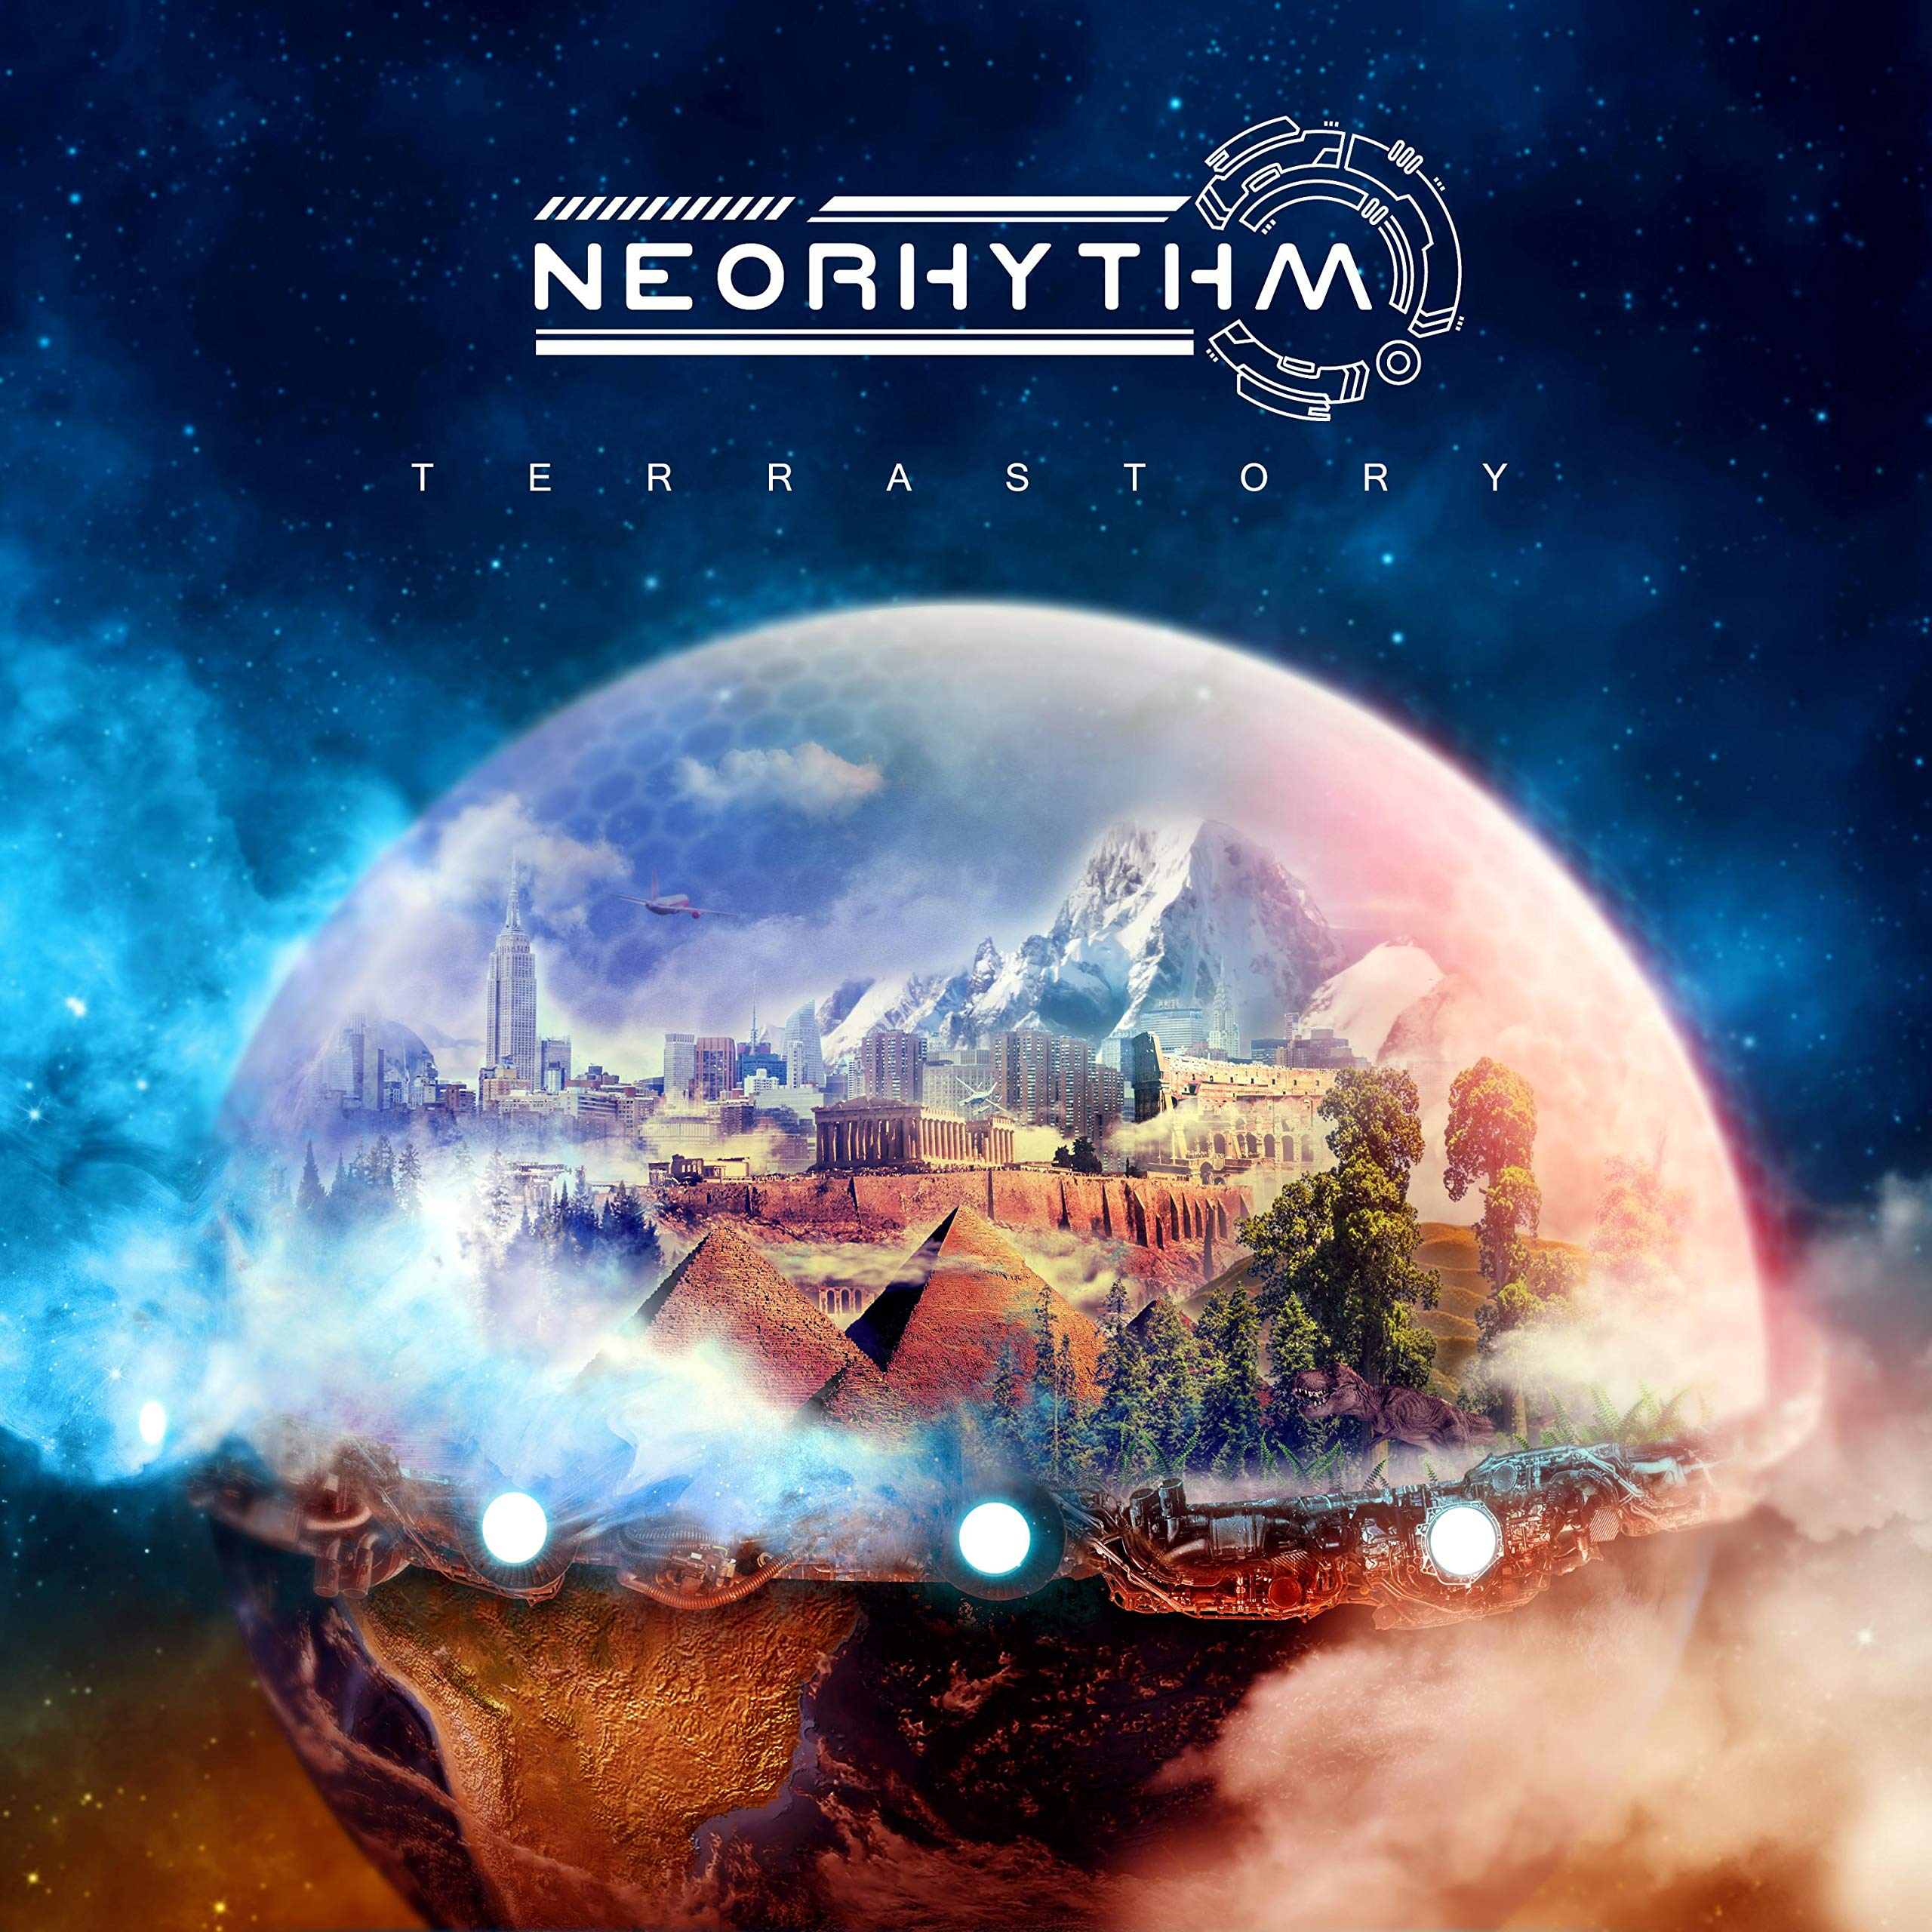 Neorhythm - Terrastory (2020) [FLAC] Download